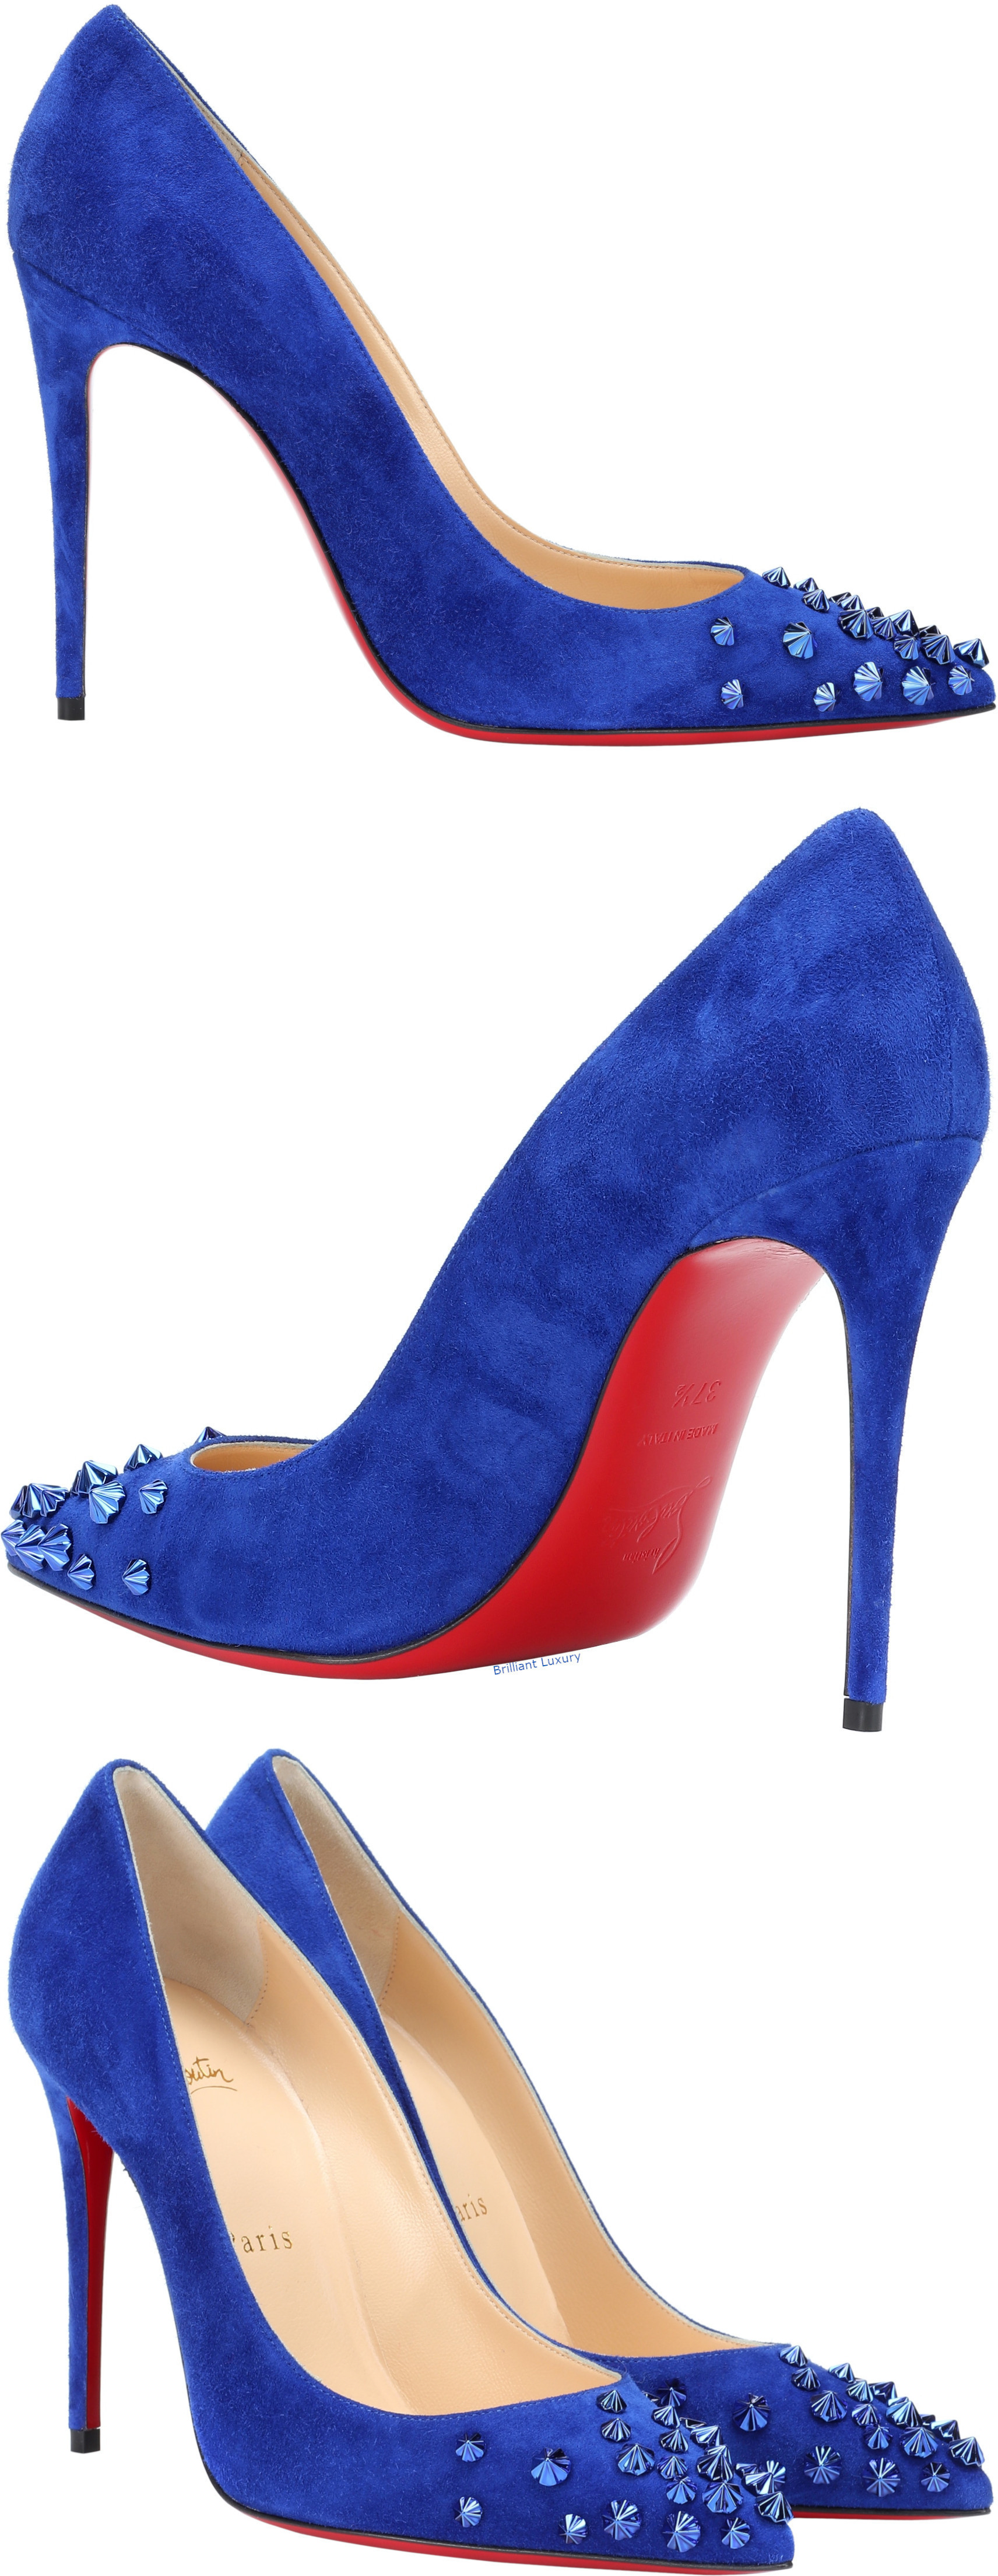 Christian Louboutin Drama 100 suede pumps in blue